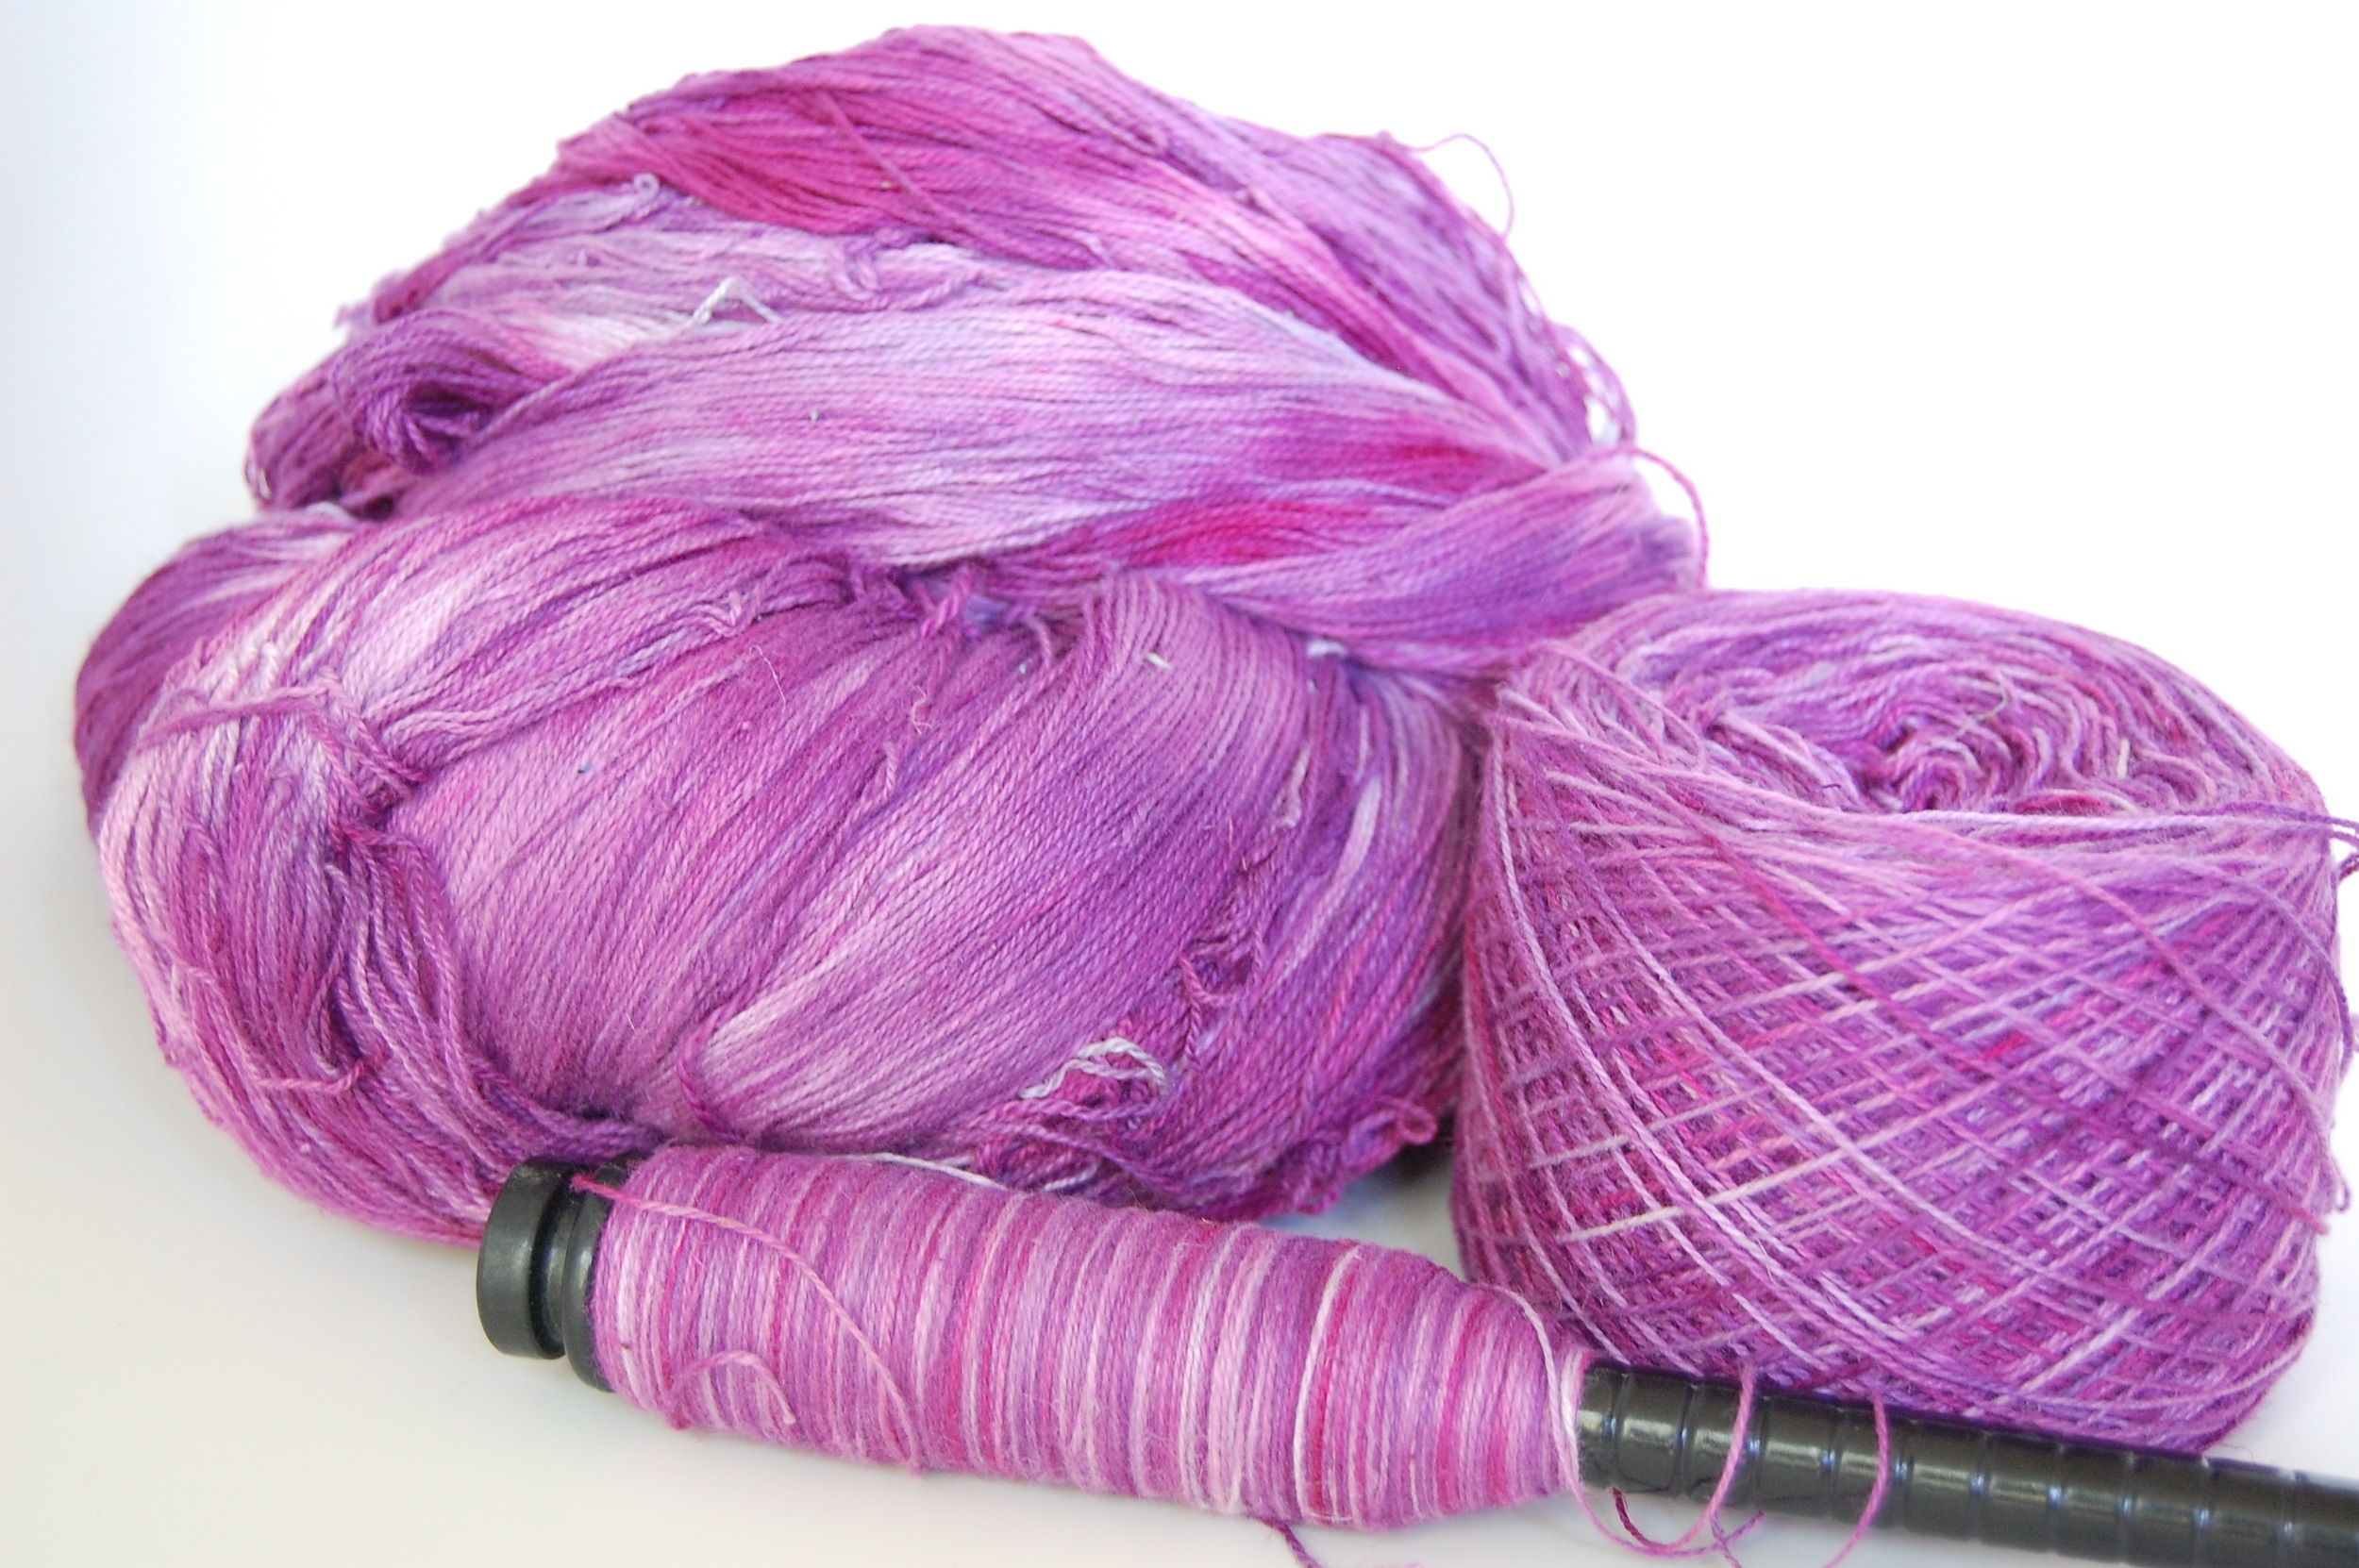 40% hemp/60% cotton in pinks and purples